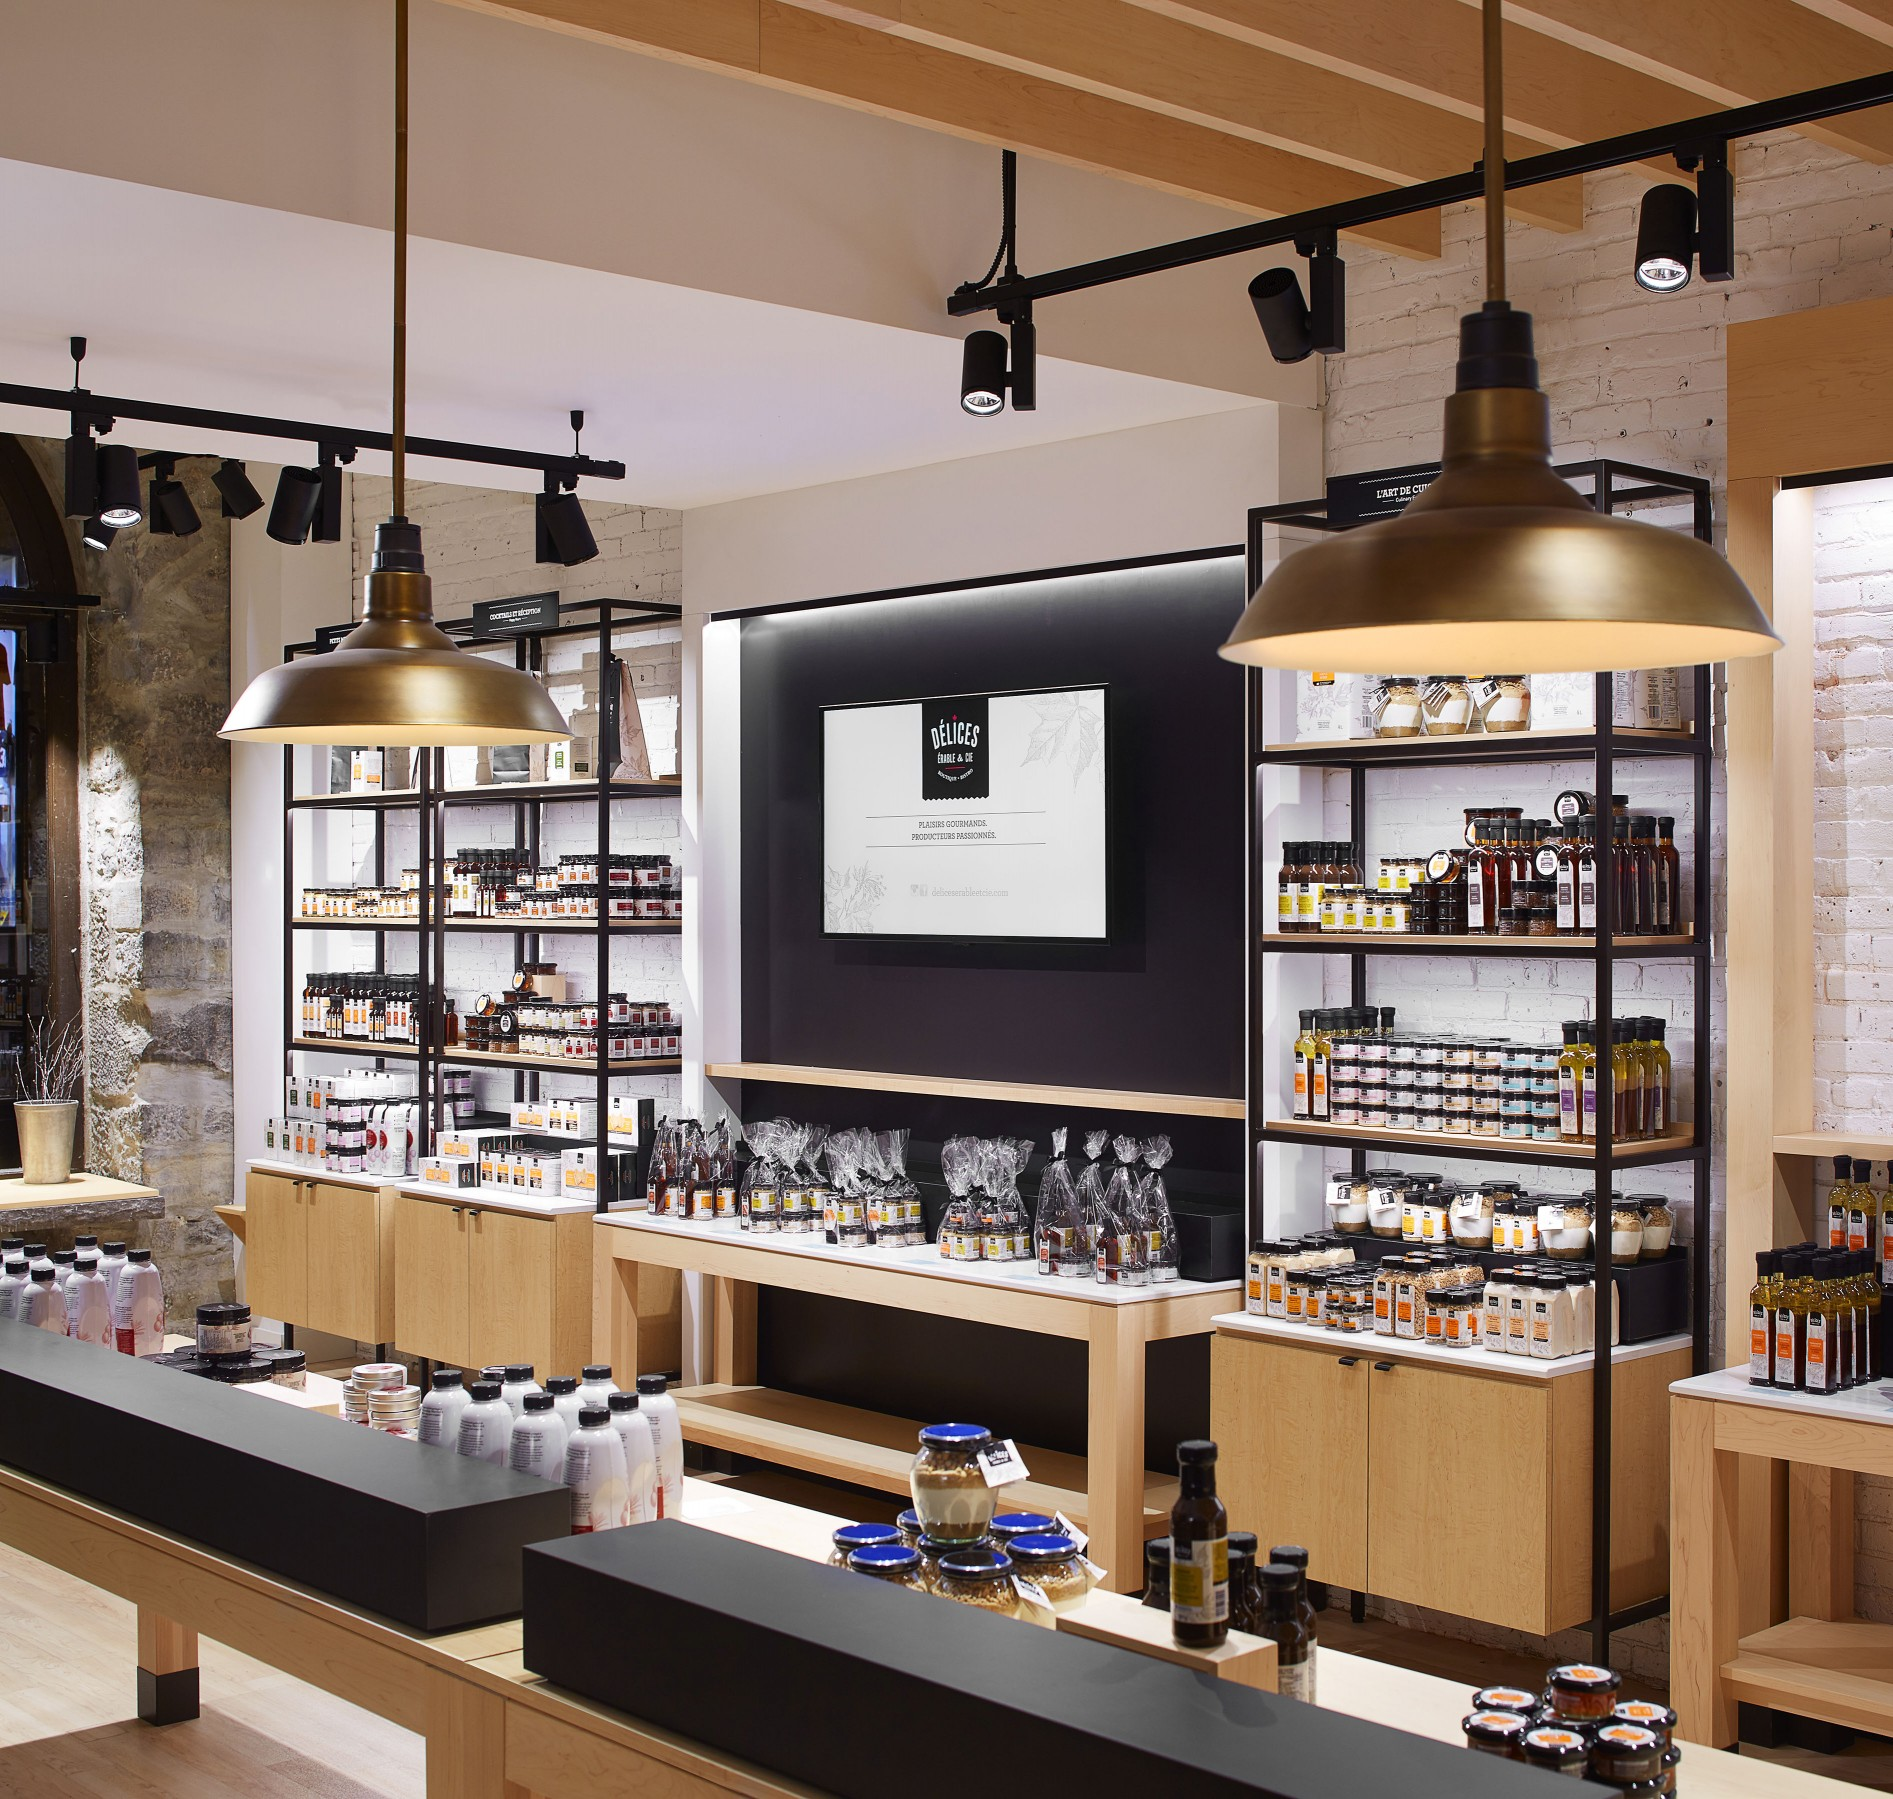 Track-mounted Spots are easily modified to reflect seasonal displays and changes in store layout. – Yves Lefebvre